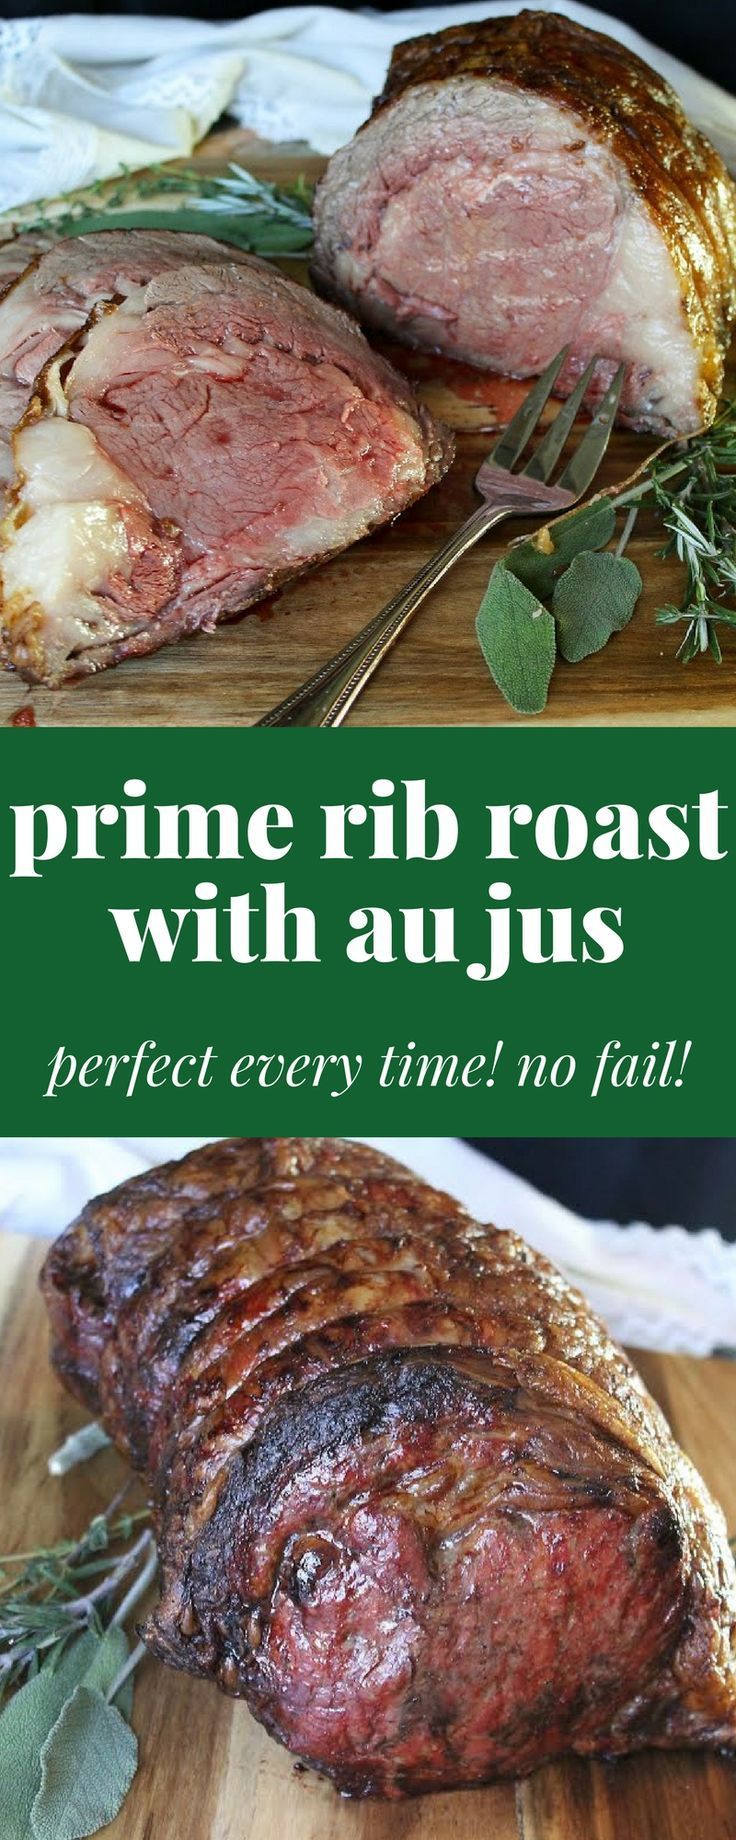 Foolproof and easy prime rib roast with au jus recipe! #primerib #primeribroast #christmasdinner #christmasdinnerrecipes #dinnertime